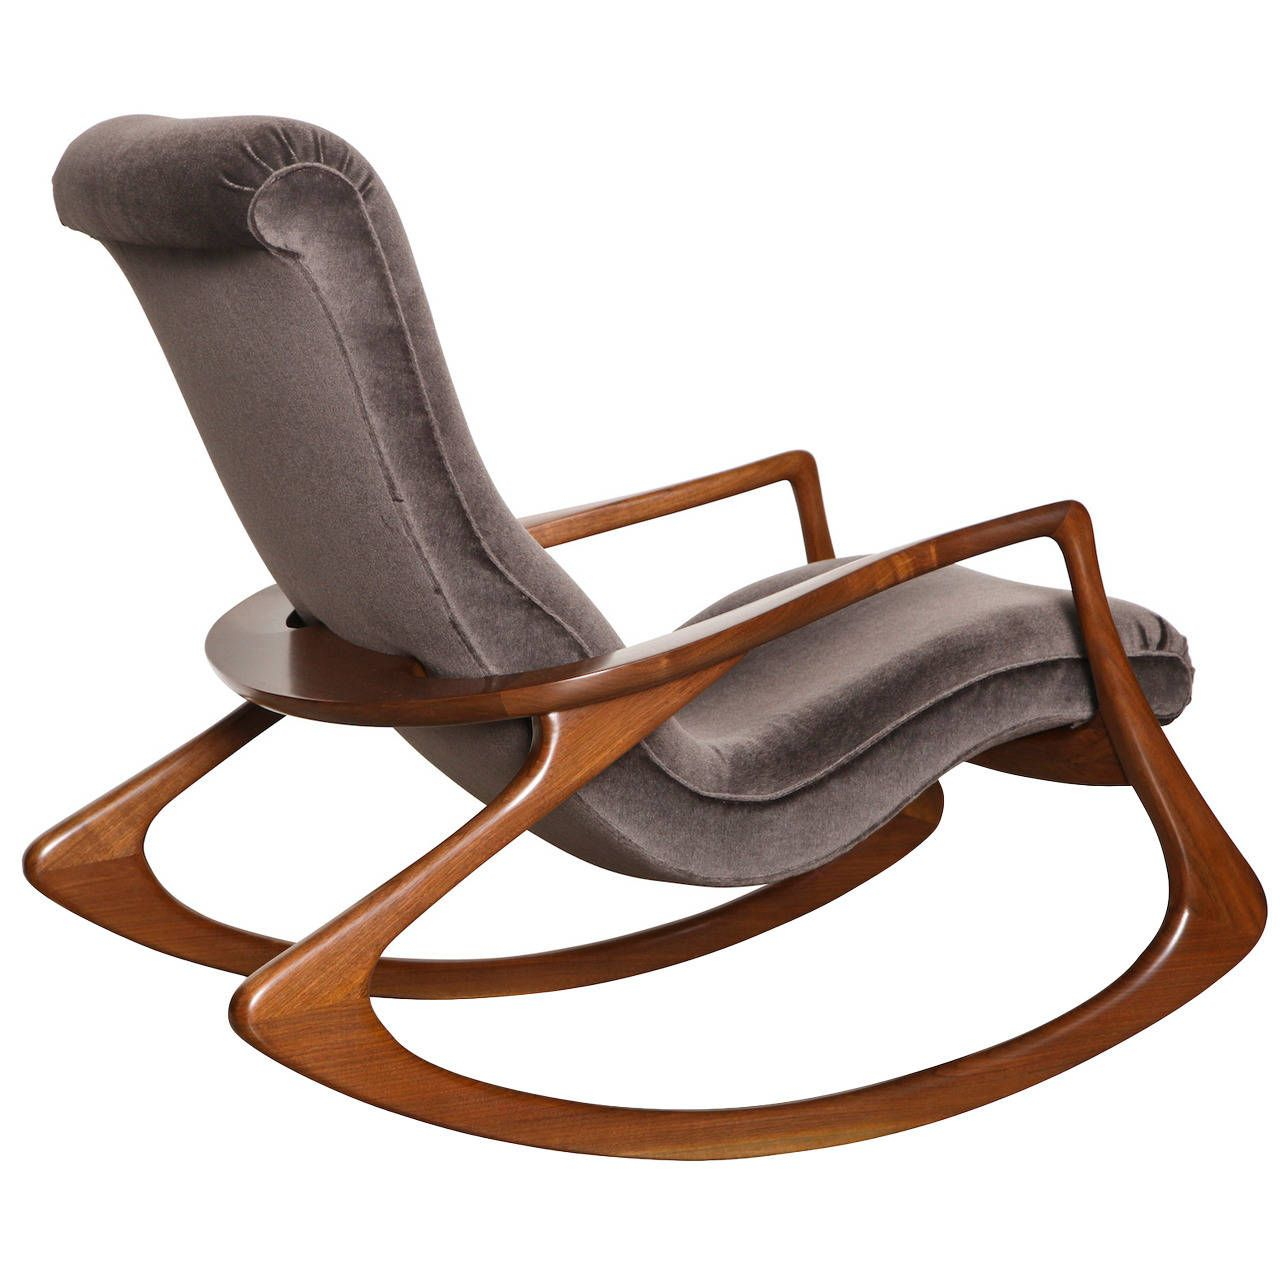 vladimir kagan rocking chair revolving meaning in hindi chairs contours